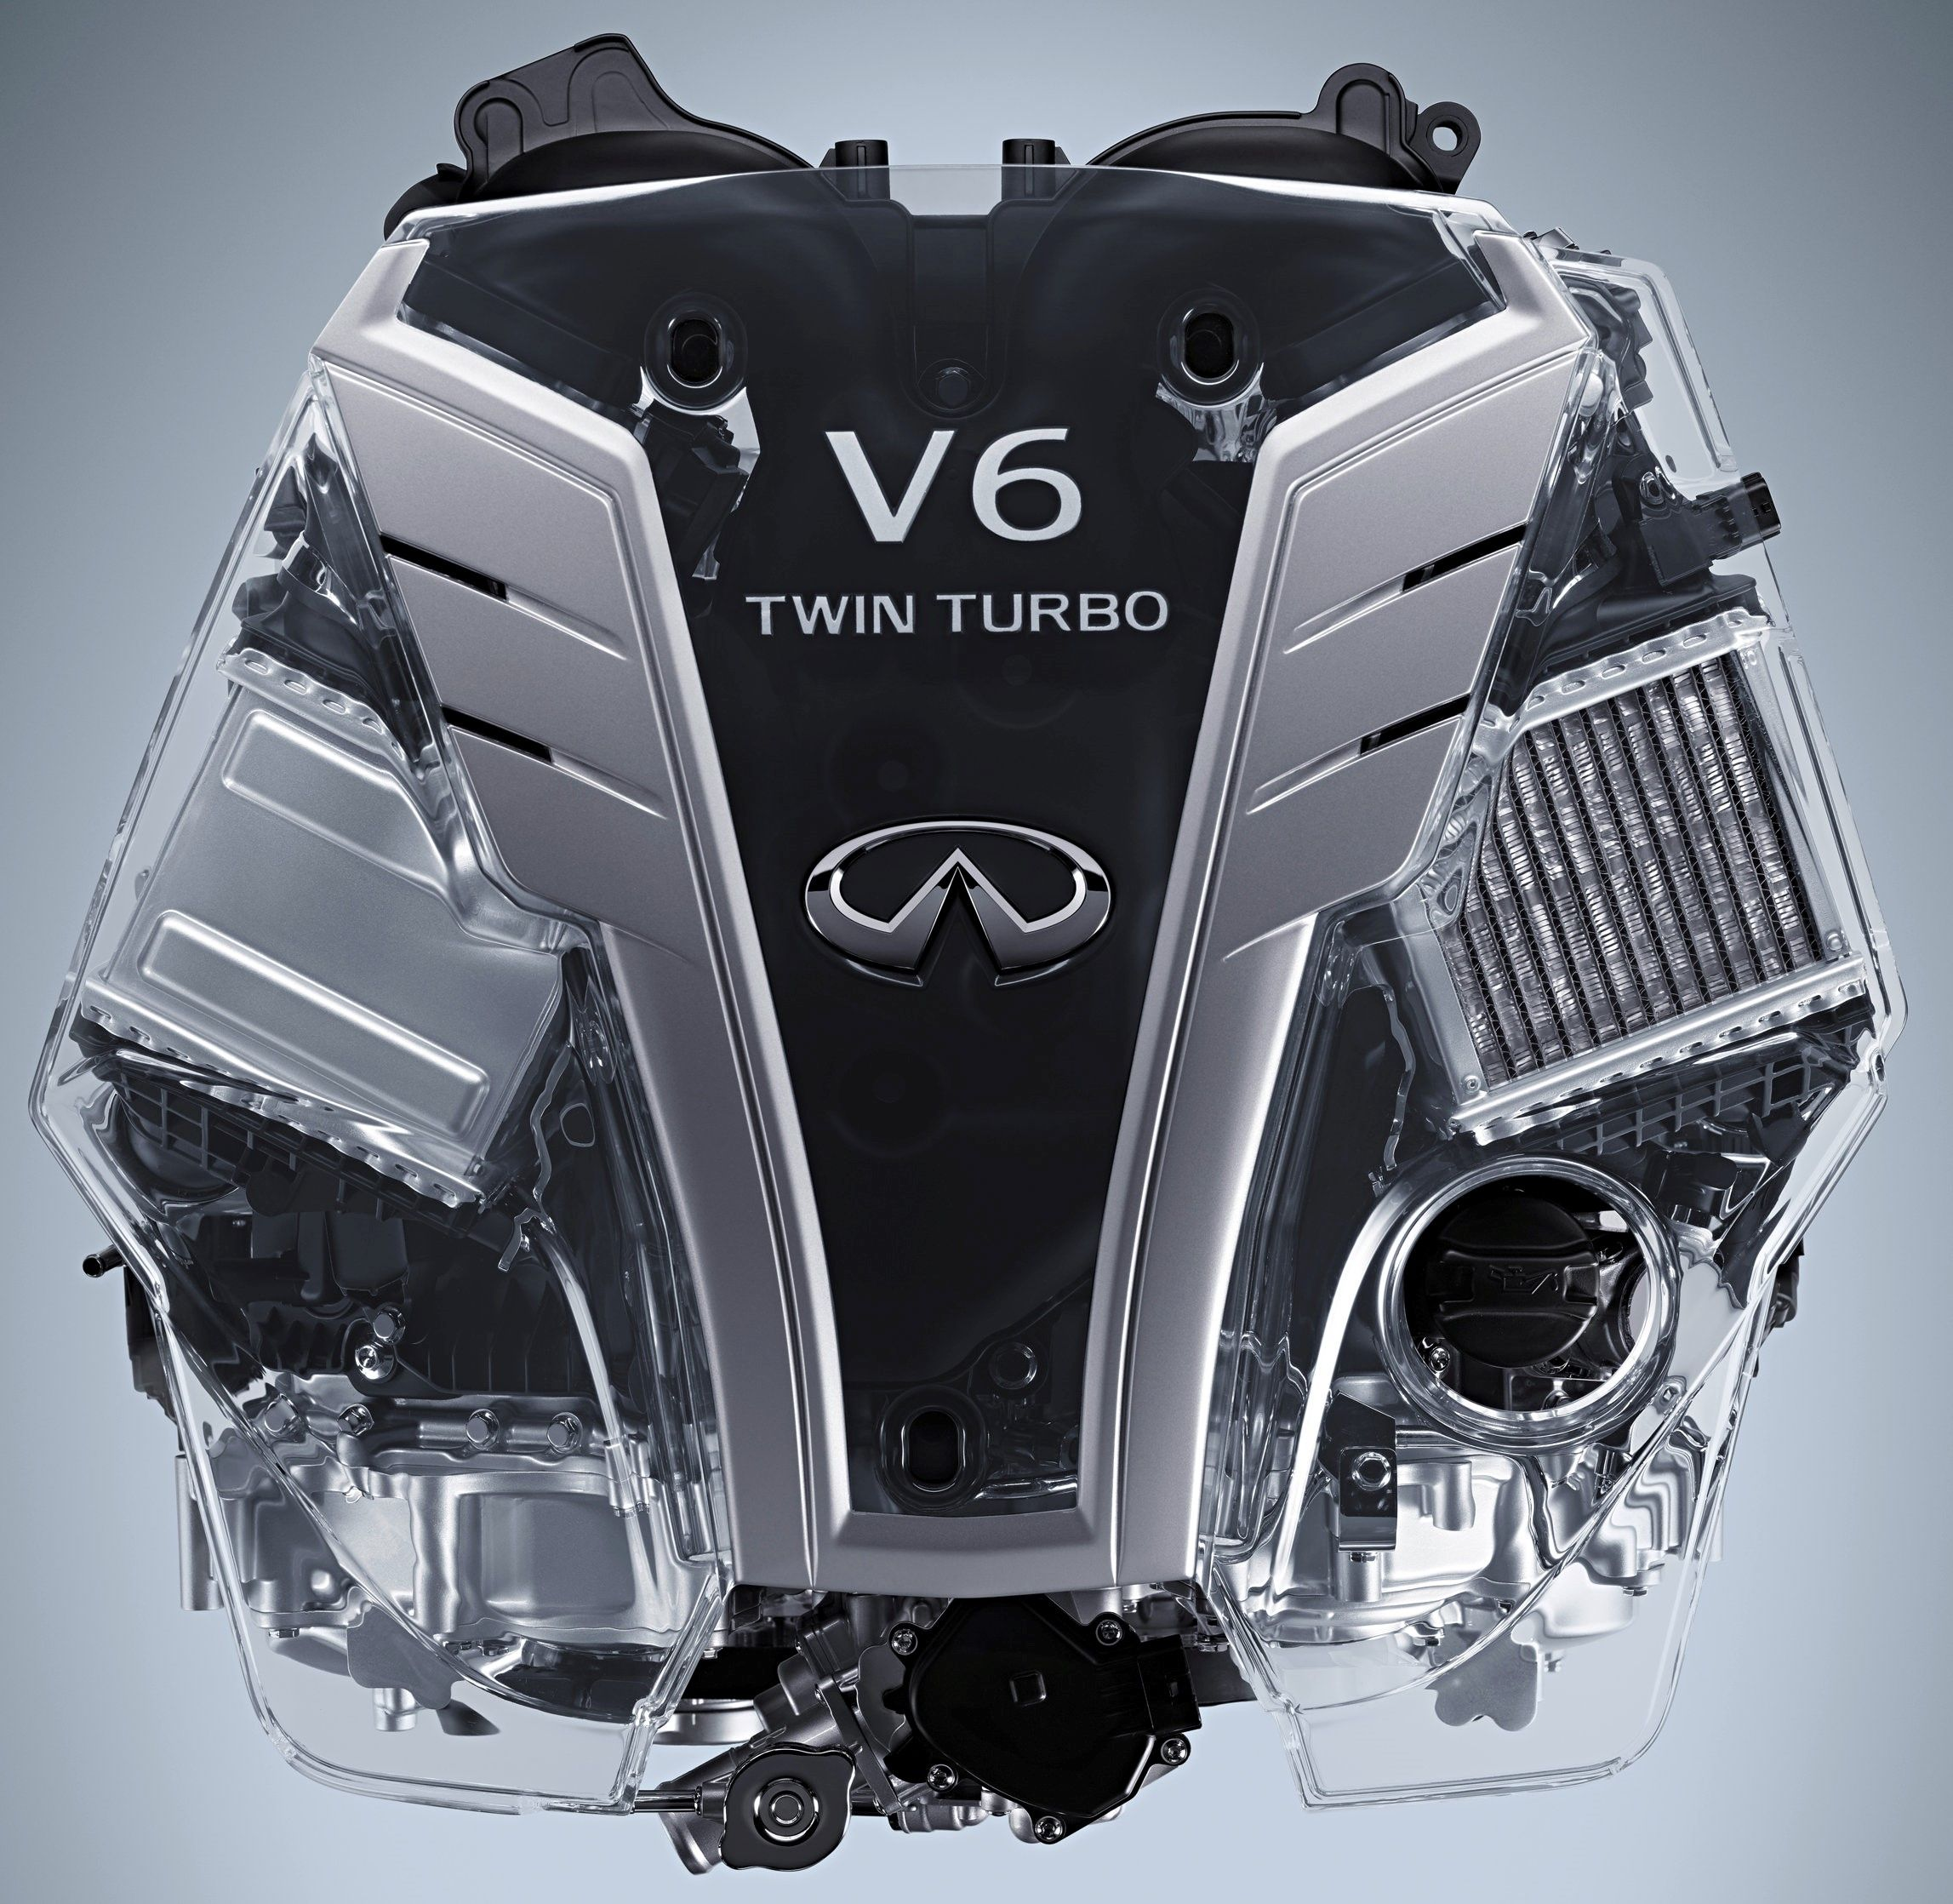 2017 Infiniti VR30DDTT 3.0-liter V6 Twin-turbo Engine